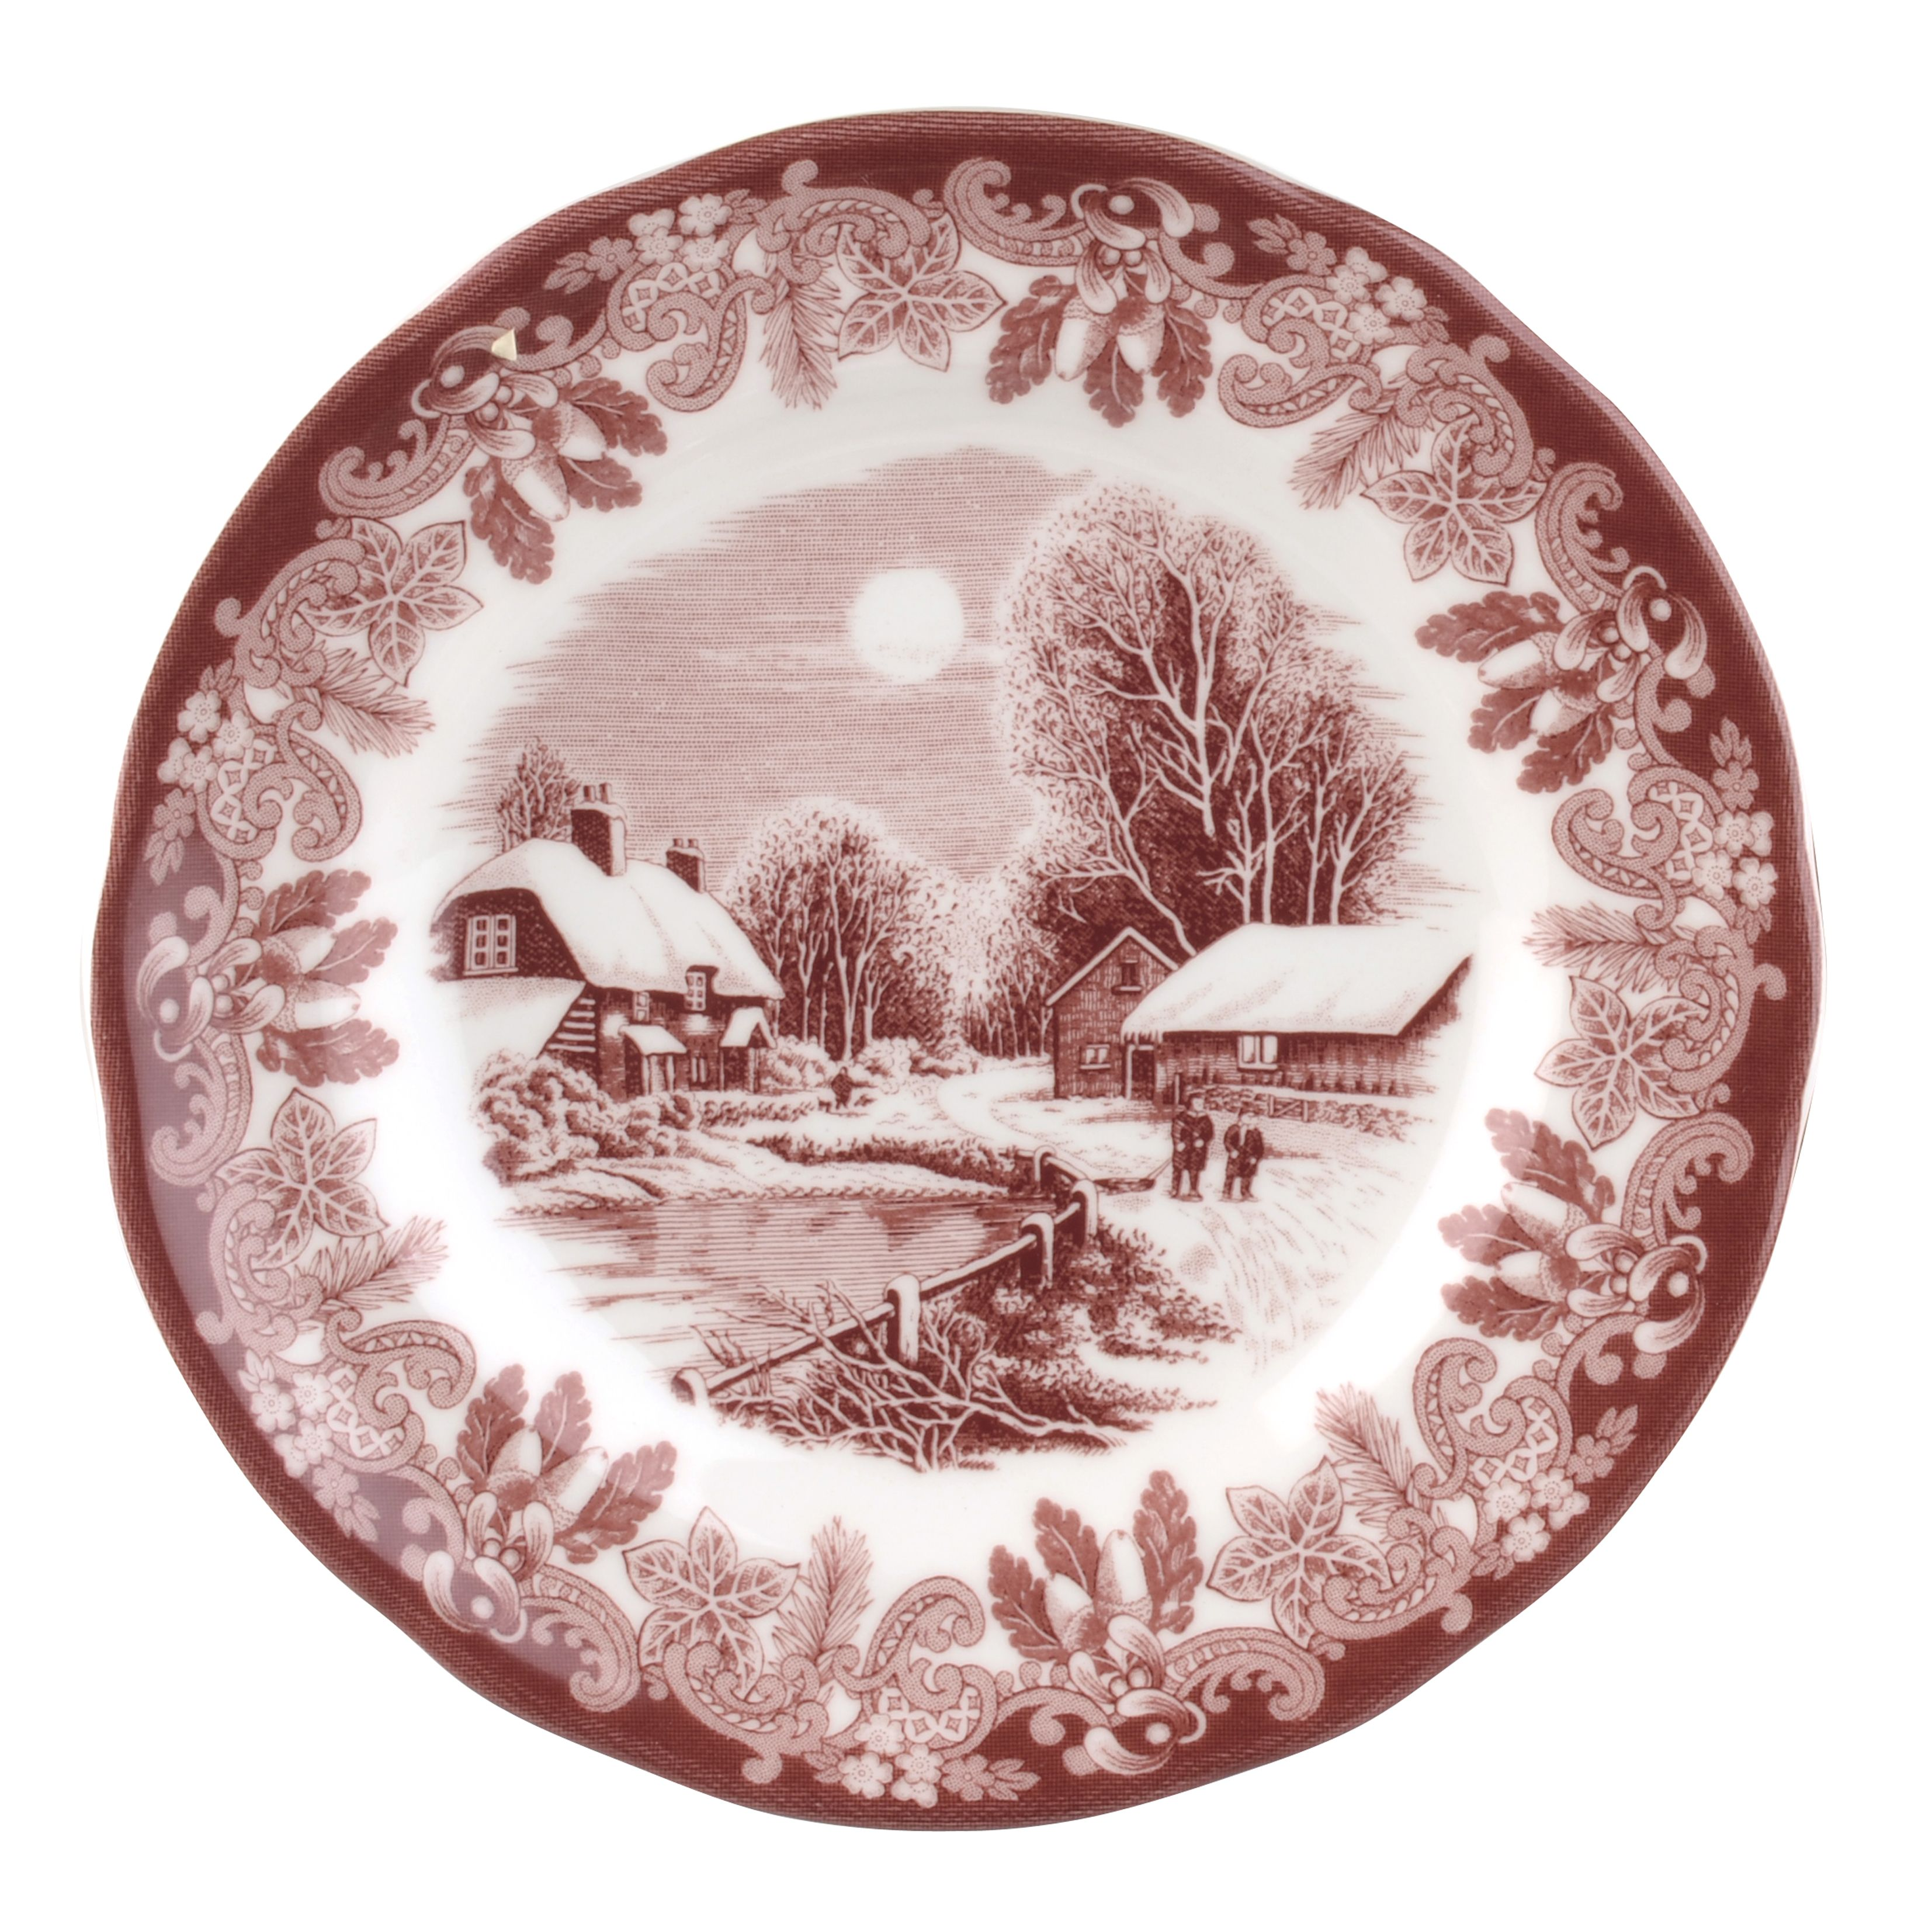 For This Modern Collection The Elegant Heritage Motif Has Been Reworked Into A Vibrant And Contemporary Red And Ke Spode Christmas Tableware Vintage Tableware